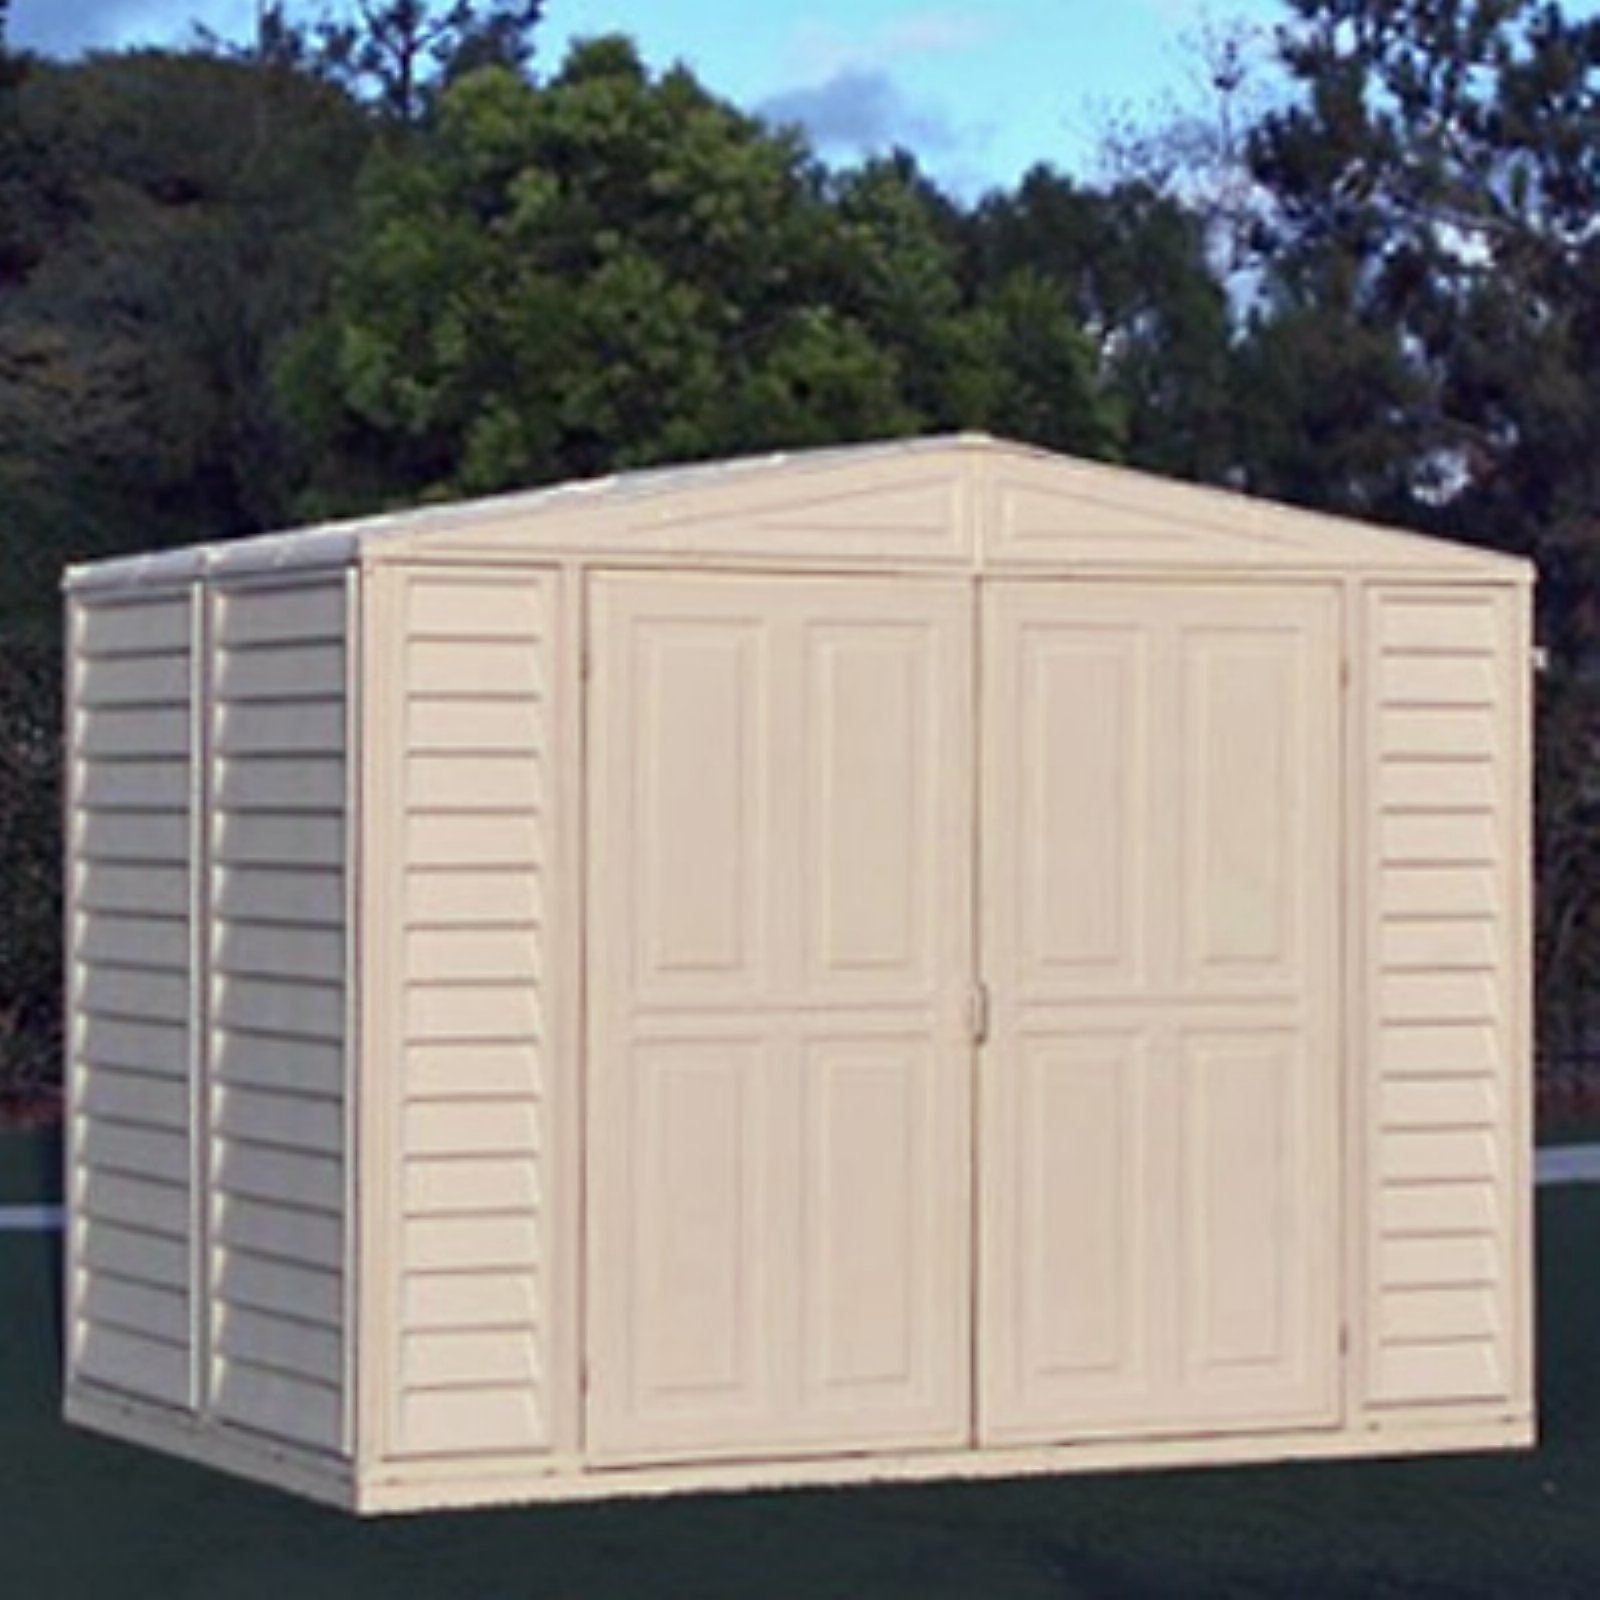 DuraMax 8 x 6 ft. Duramate Storage Shed